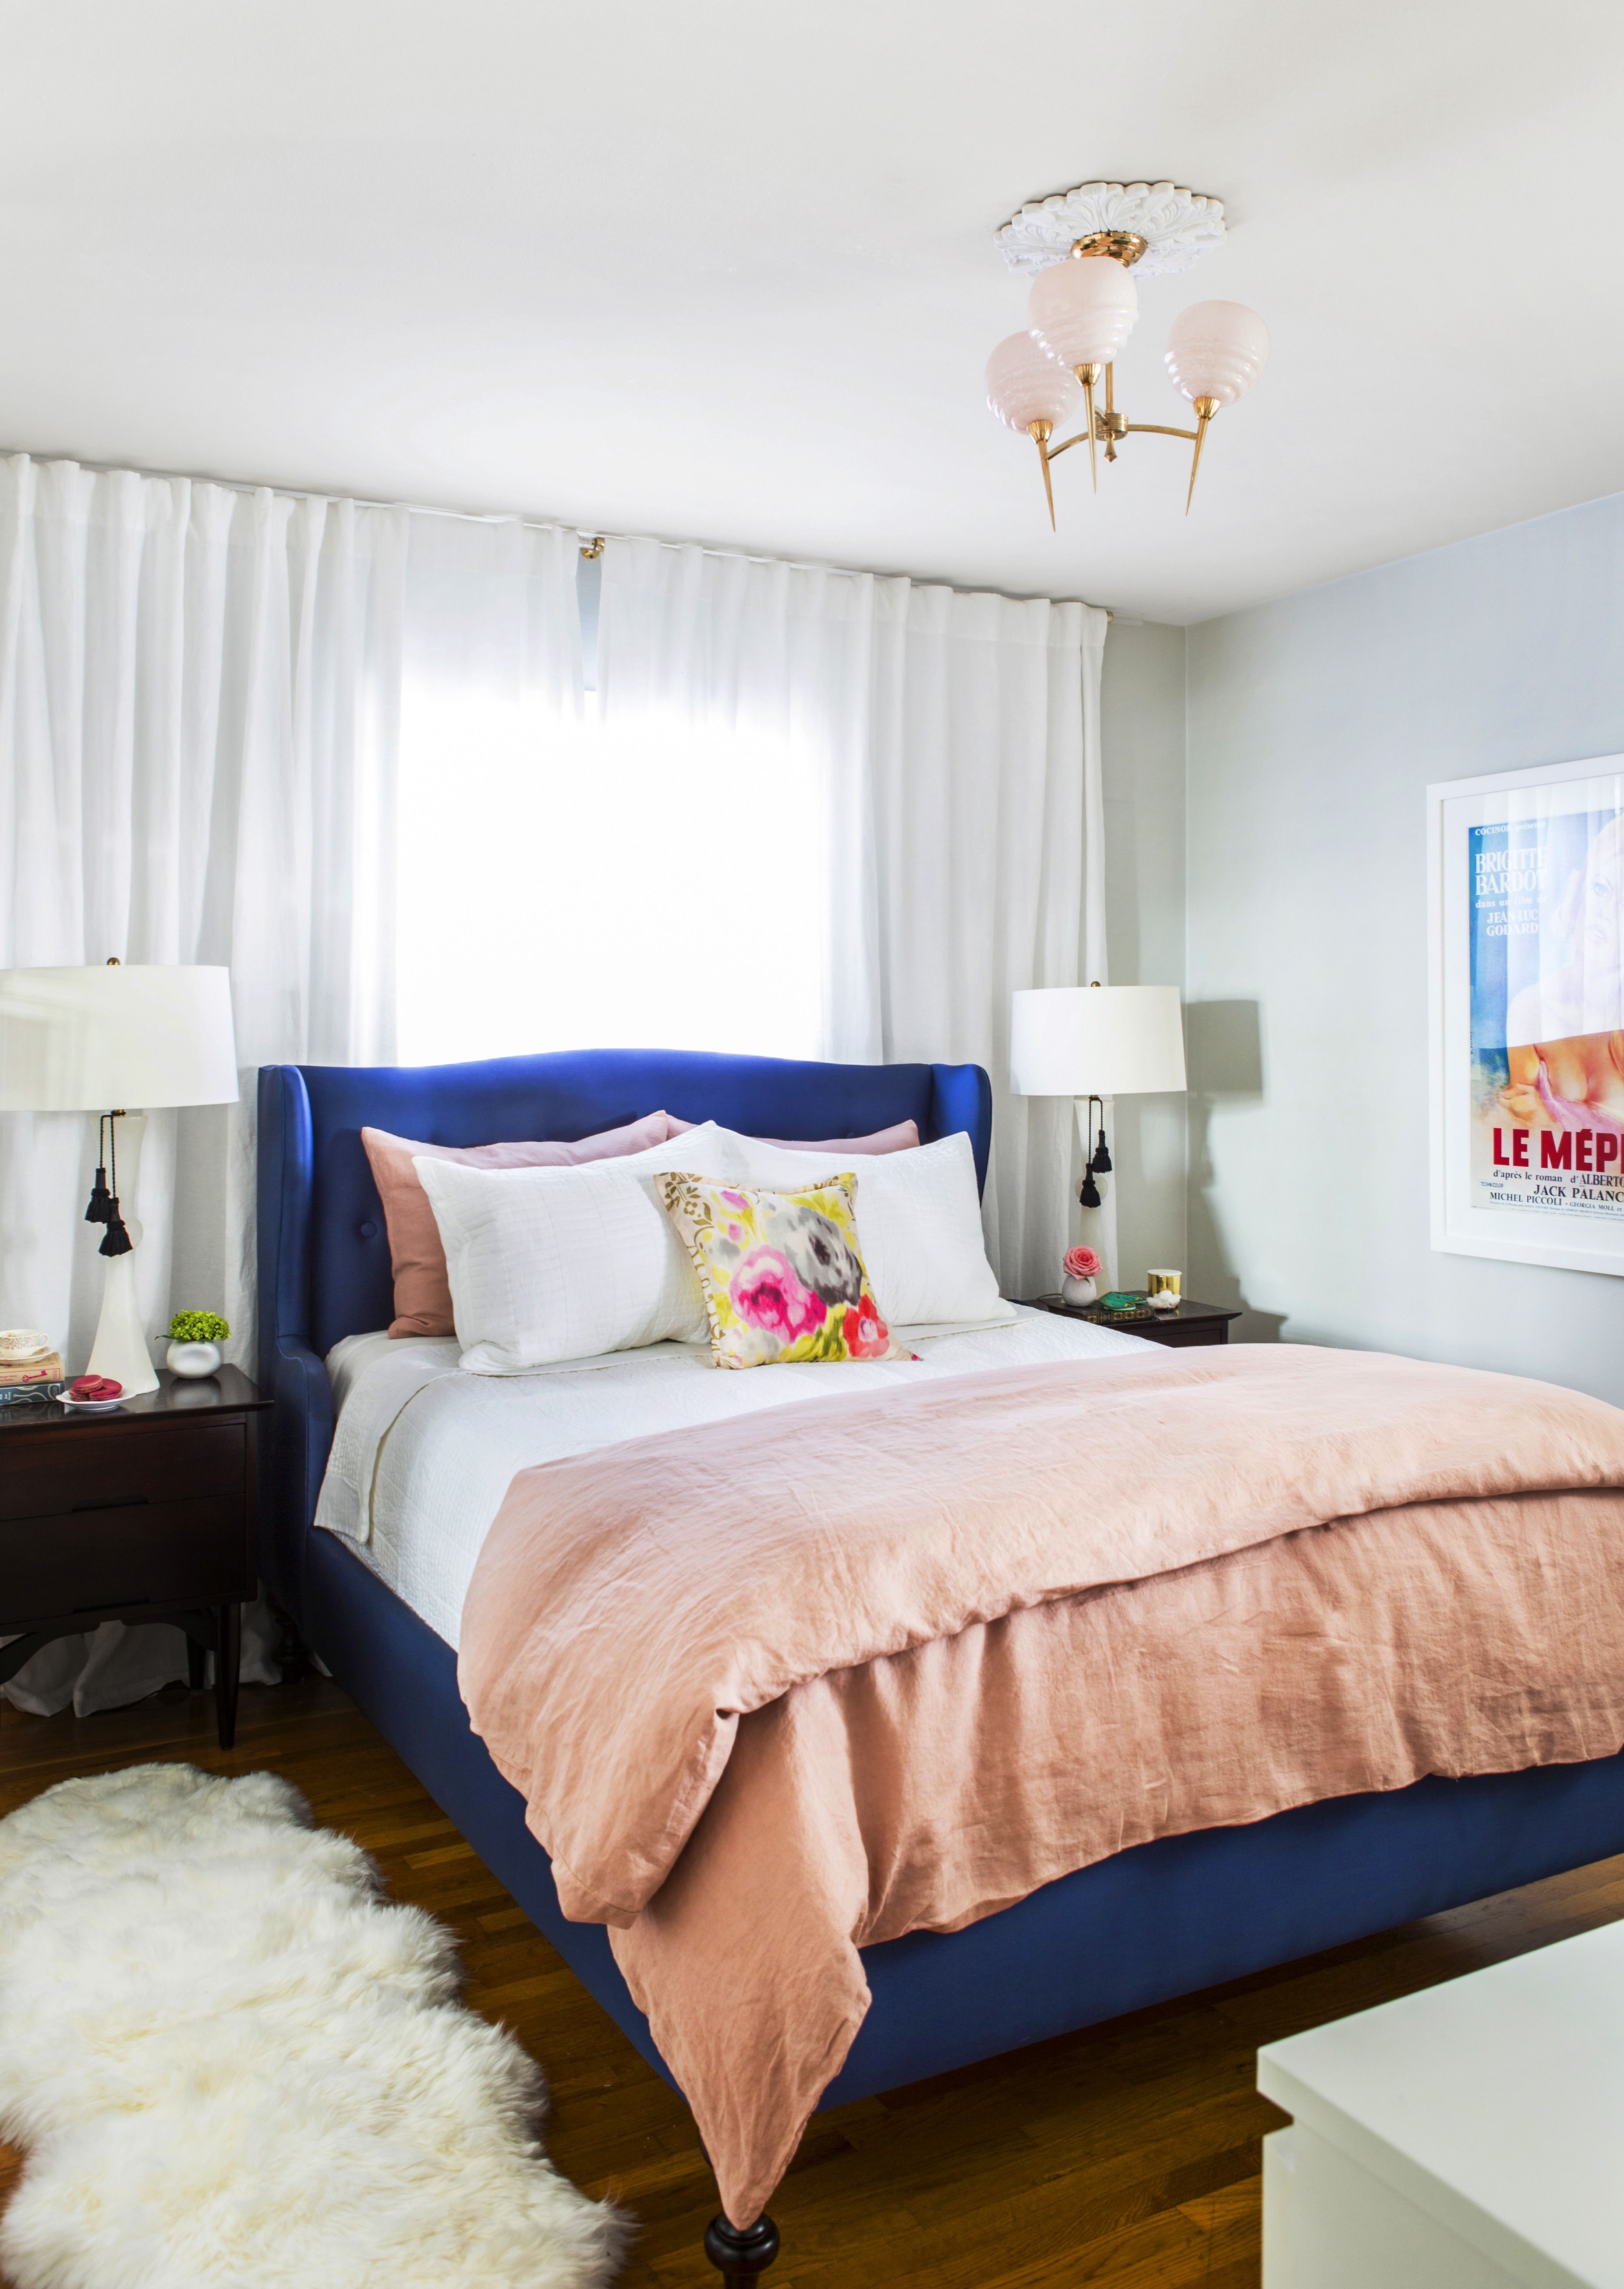 57 Bedroom Decorating Ideas - How to Design a Master Bedroom